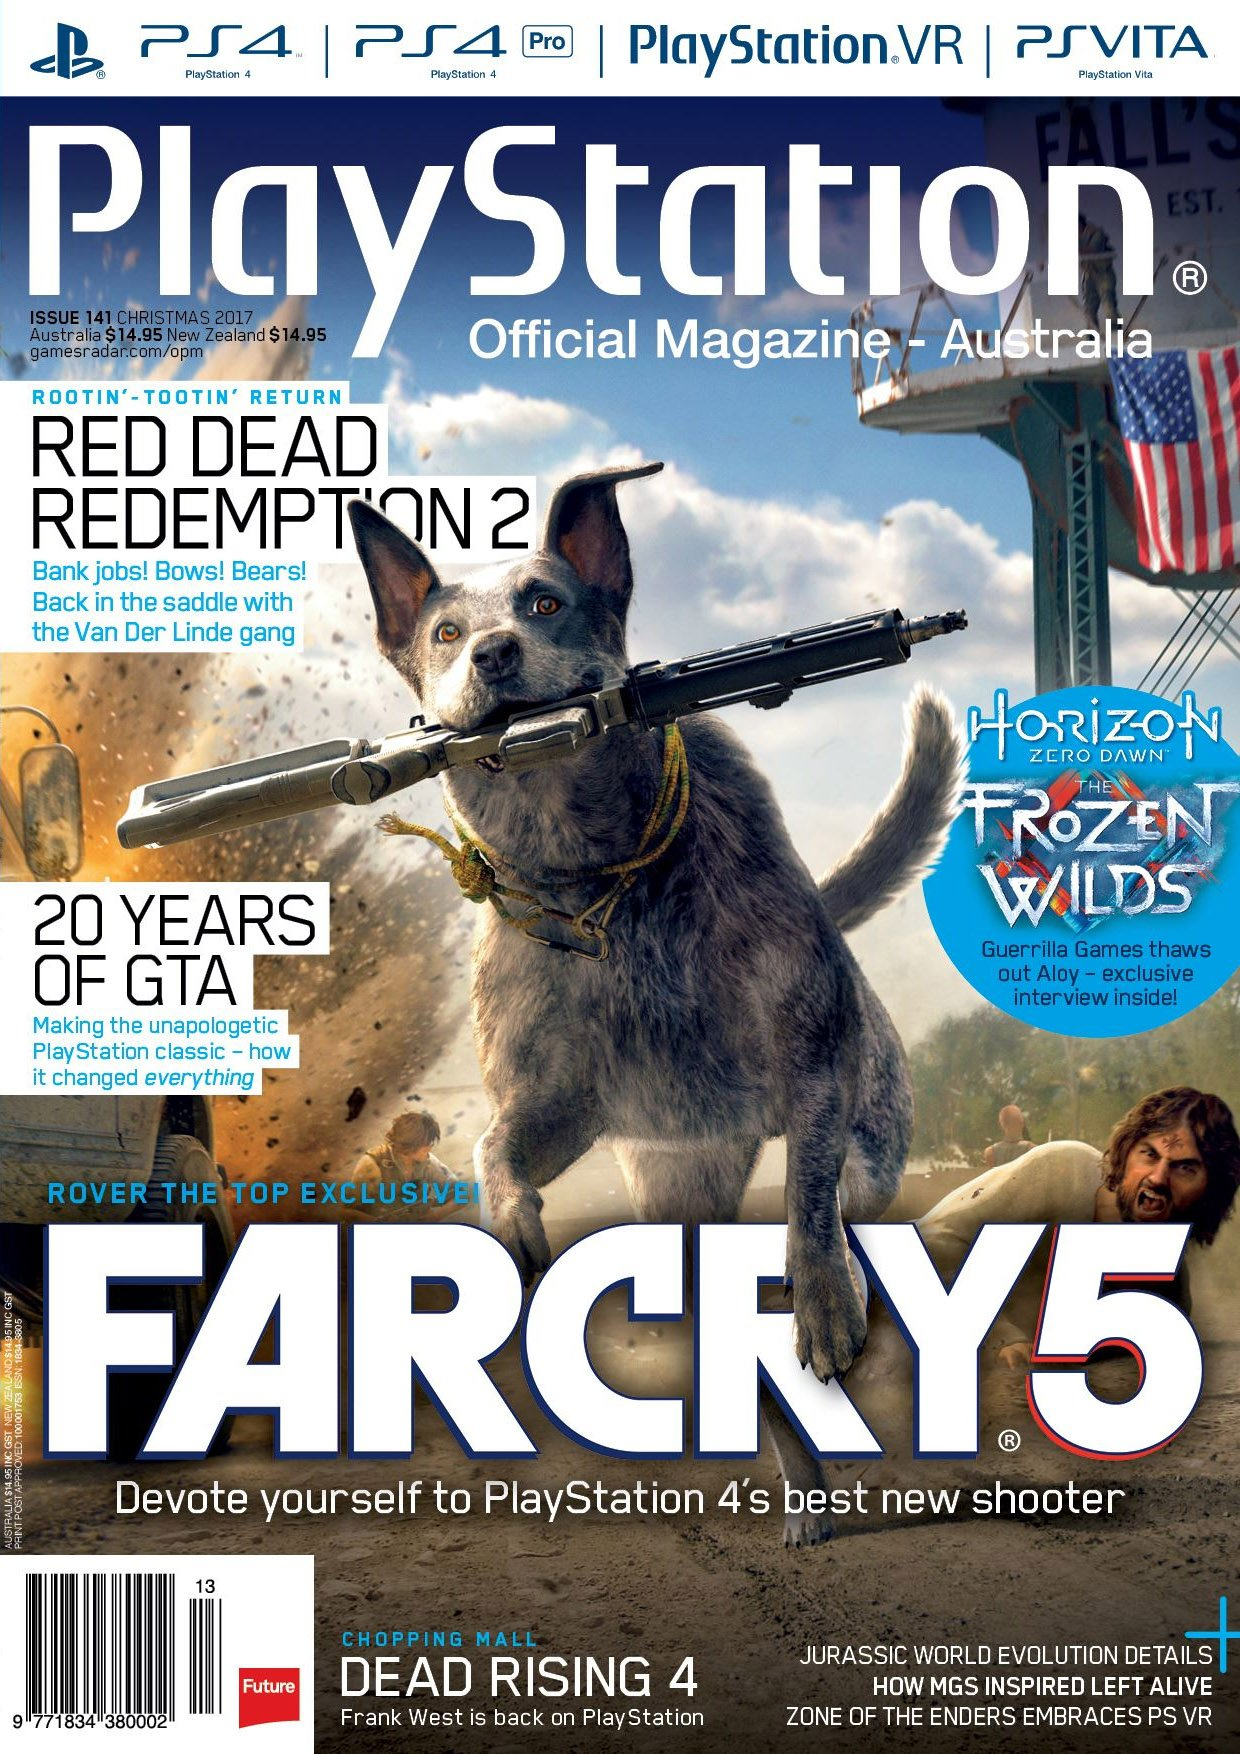 PlayStation Official Magazine Issue 141 (Christmas 2017)